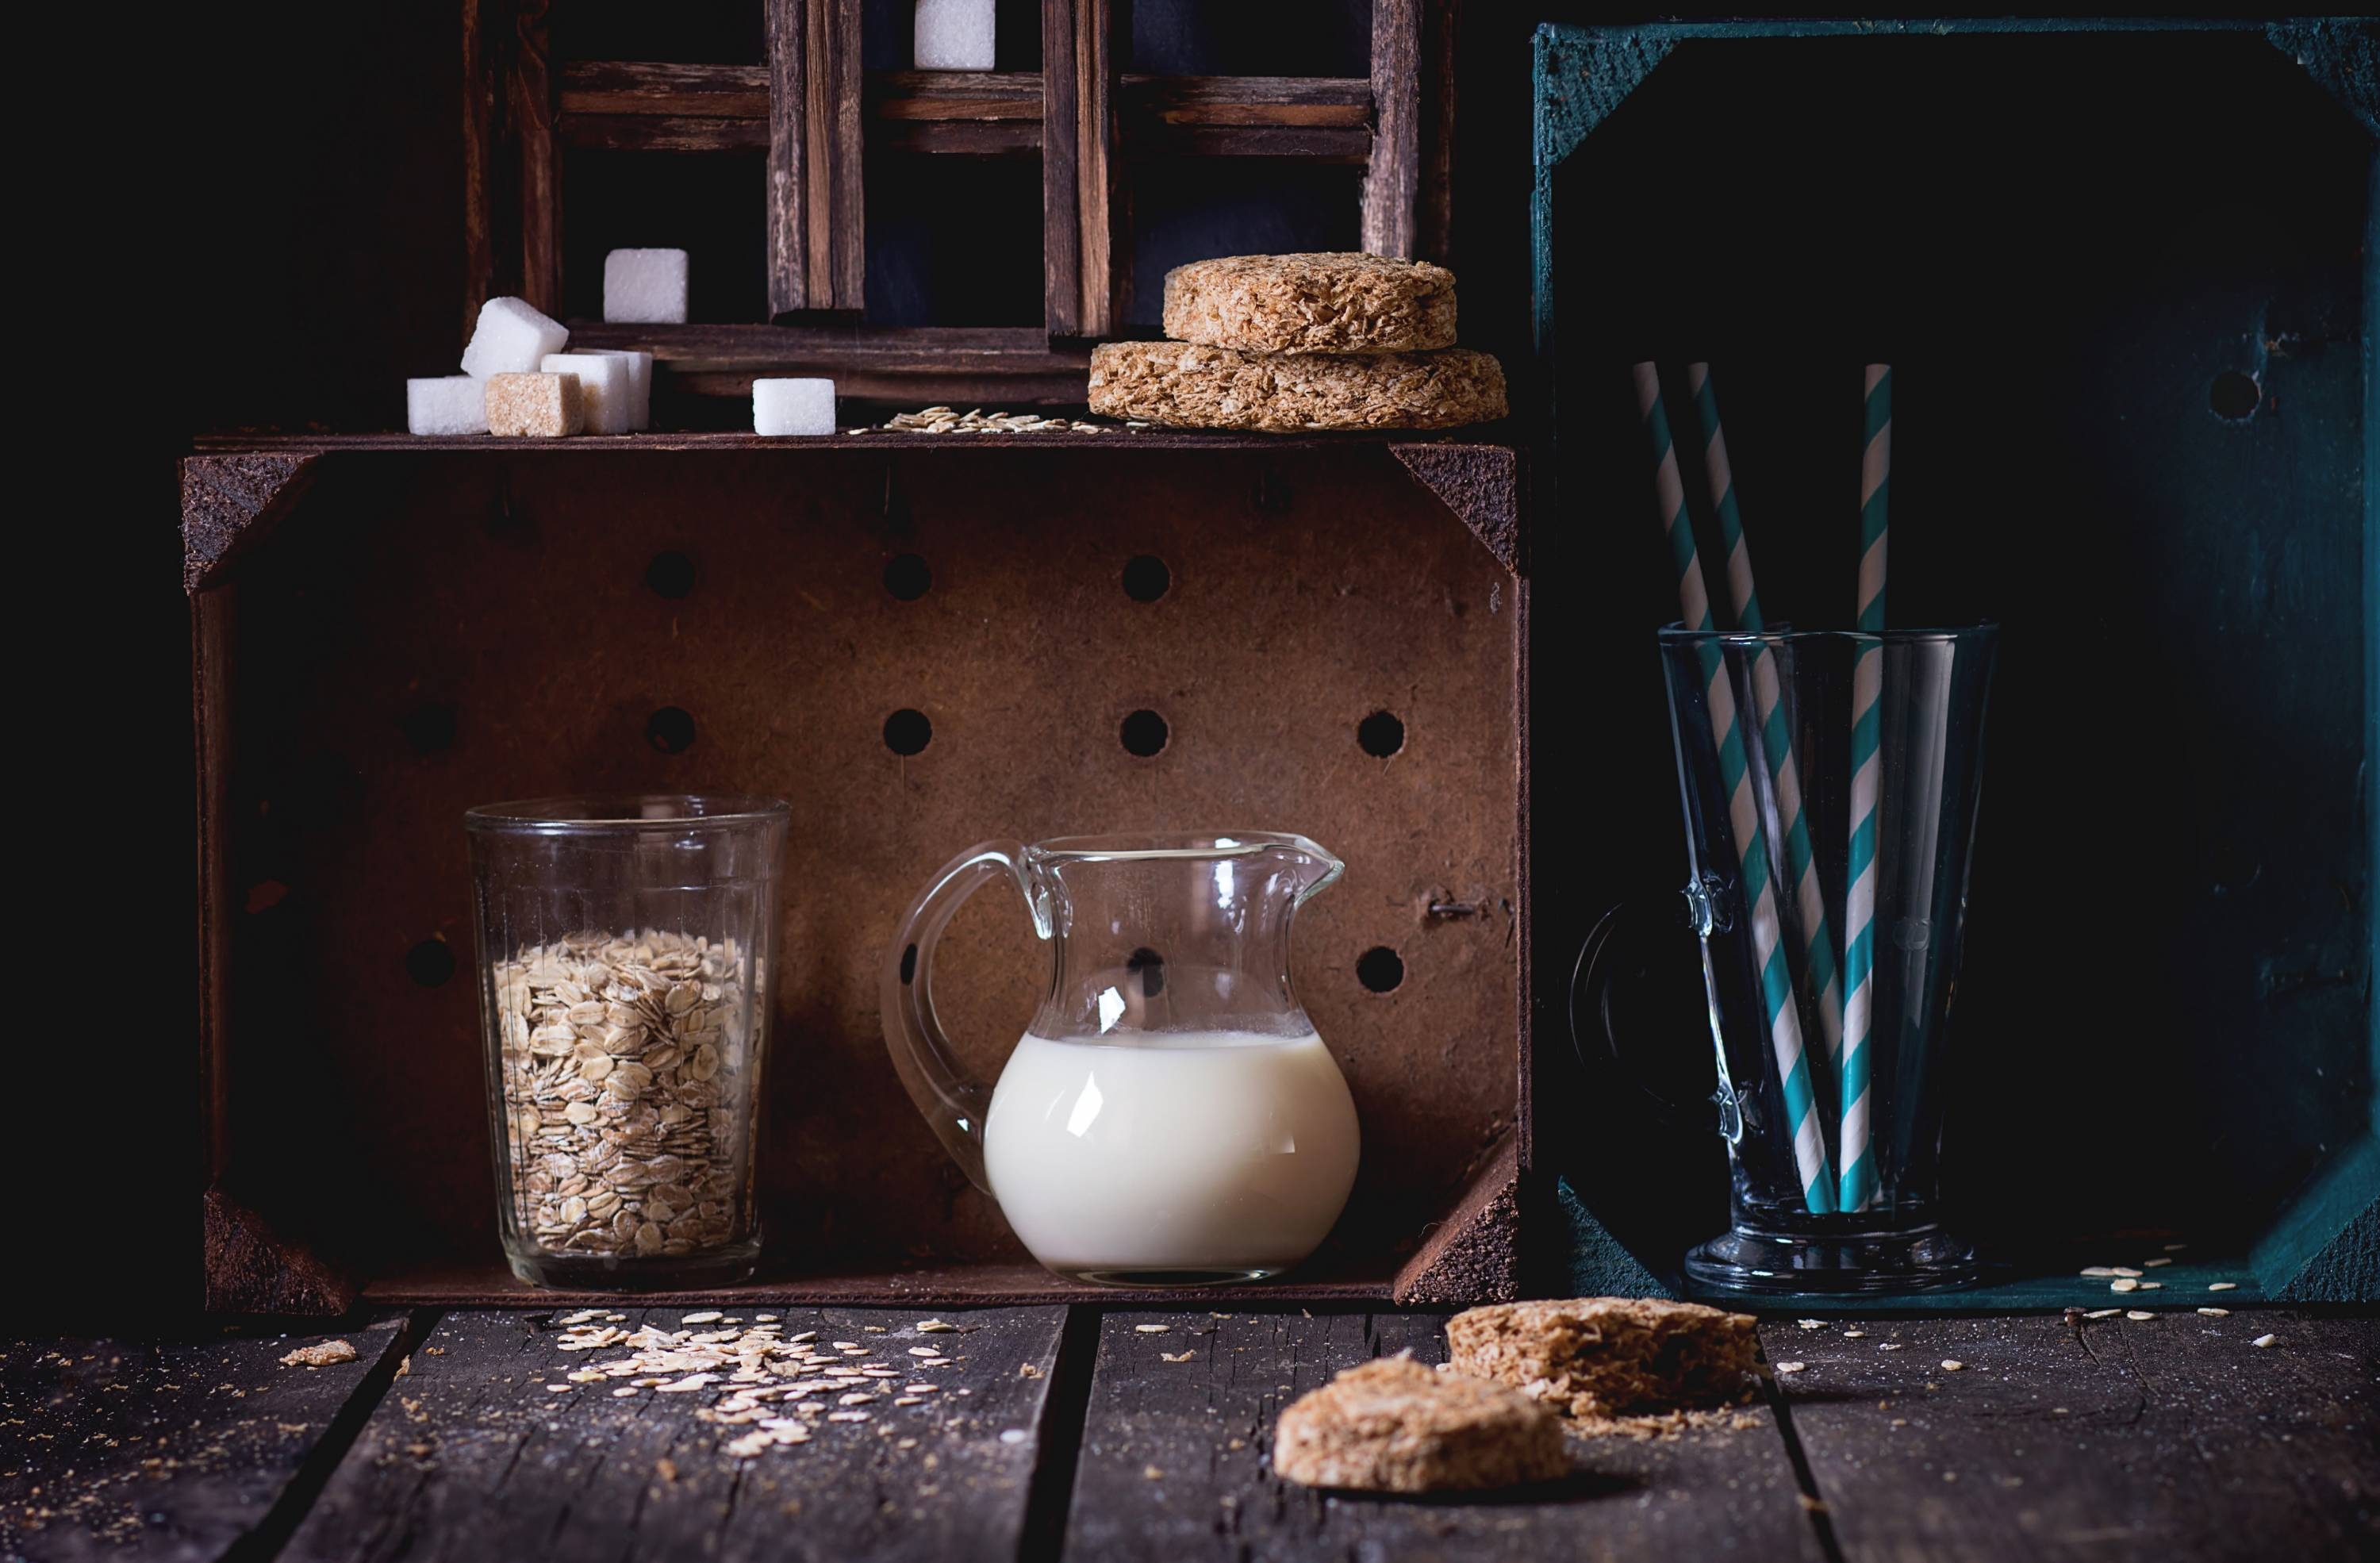 Glass jug of non-dairy oat milk and retro glass of oat flakes with sugar cubes and crispbread in wooden kitchen cabinet over old wooden table. Dark rustic style.